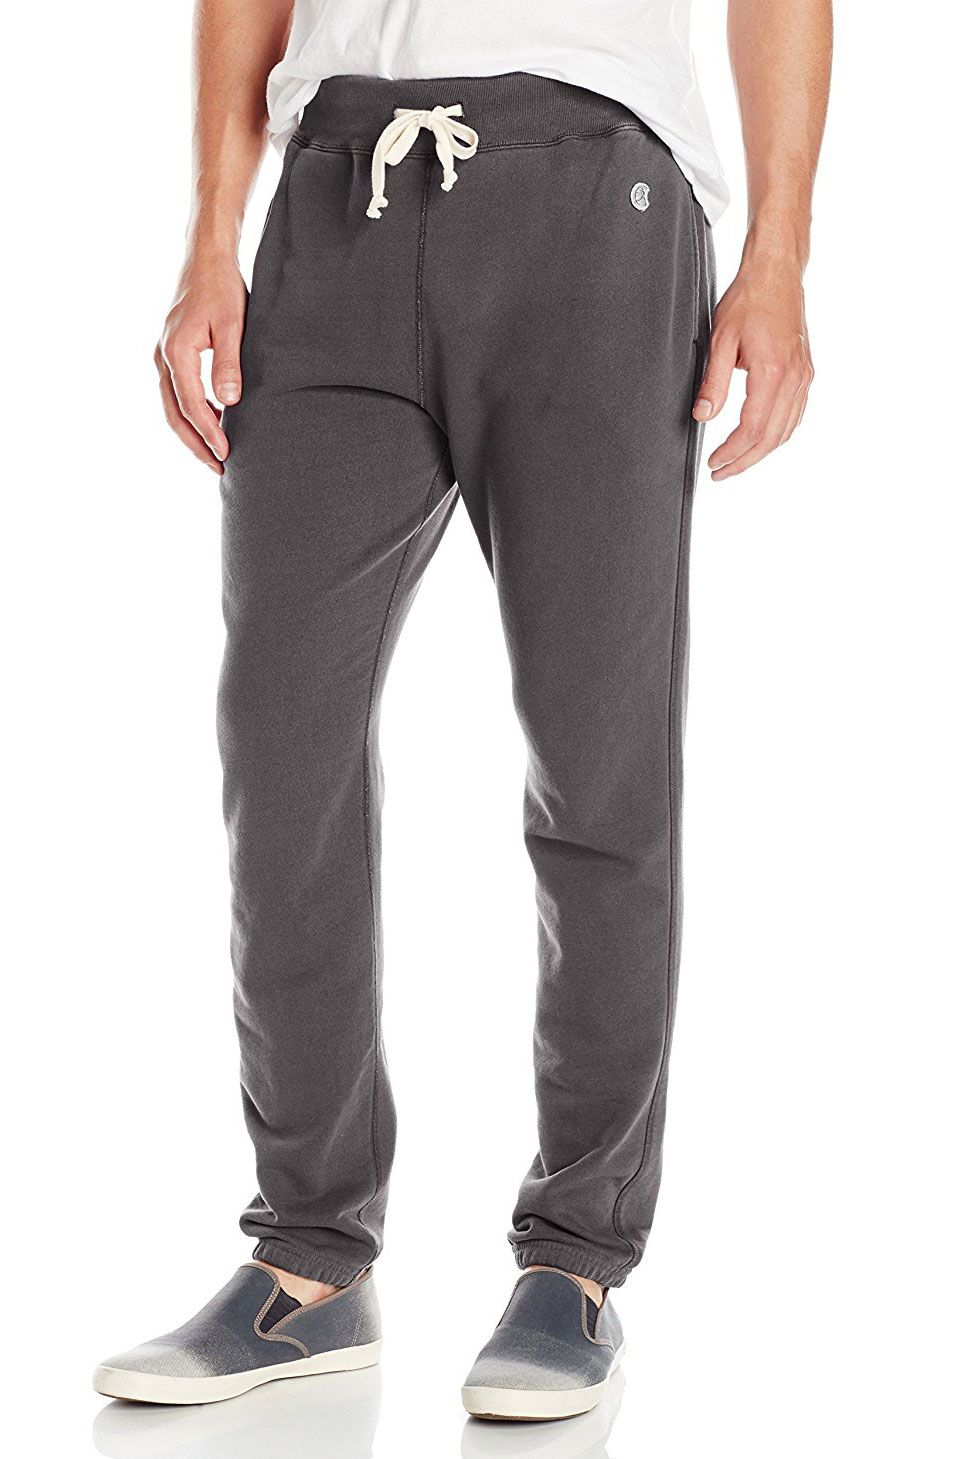 560da2193432 Recommended Products. Minnetonka Men s Double Bottom ...